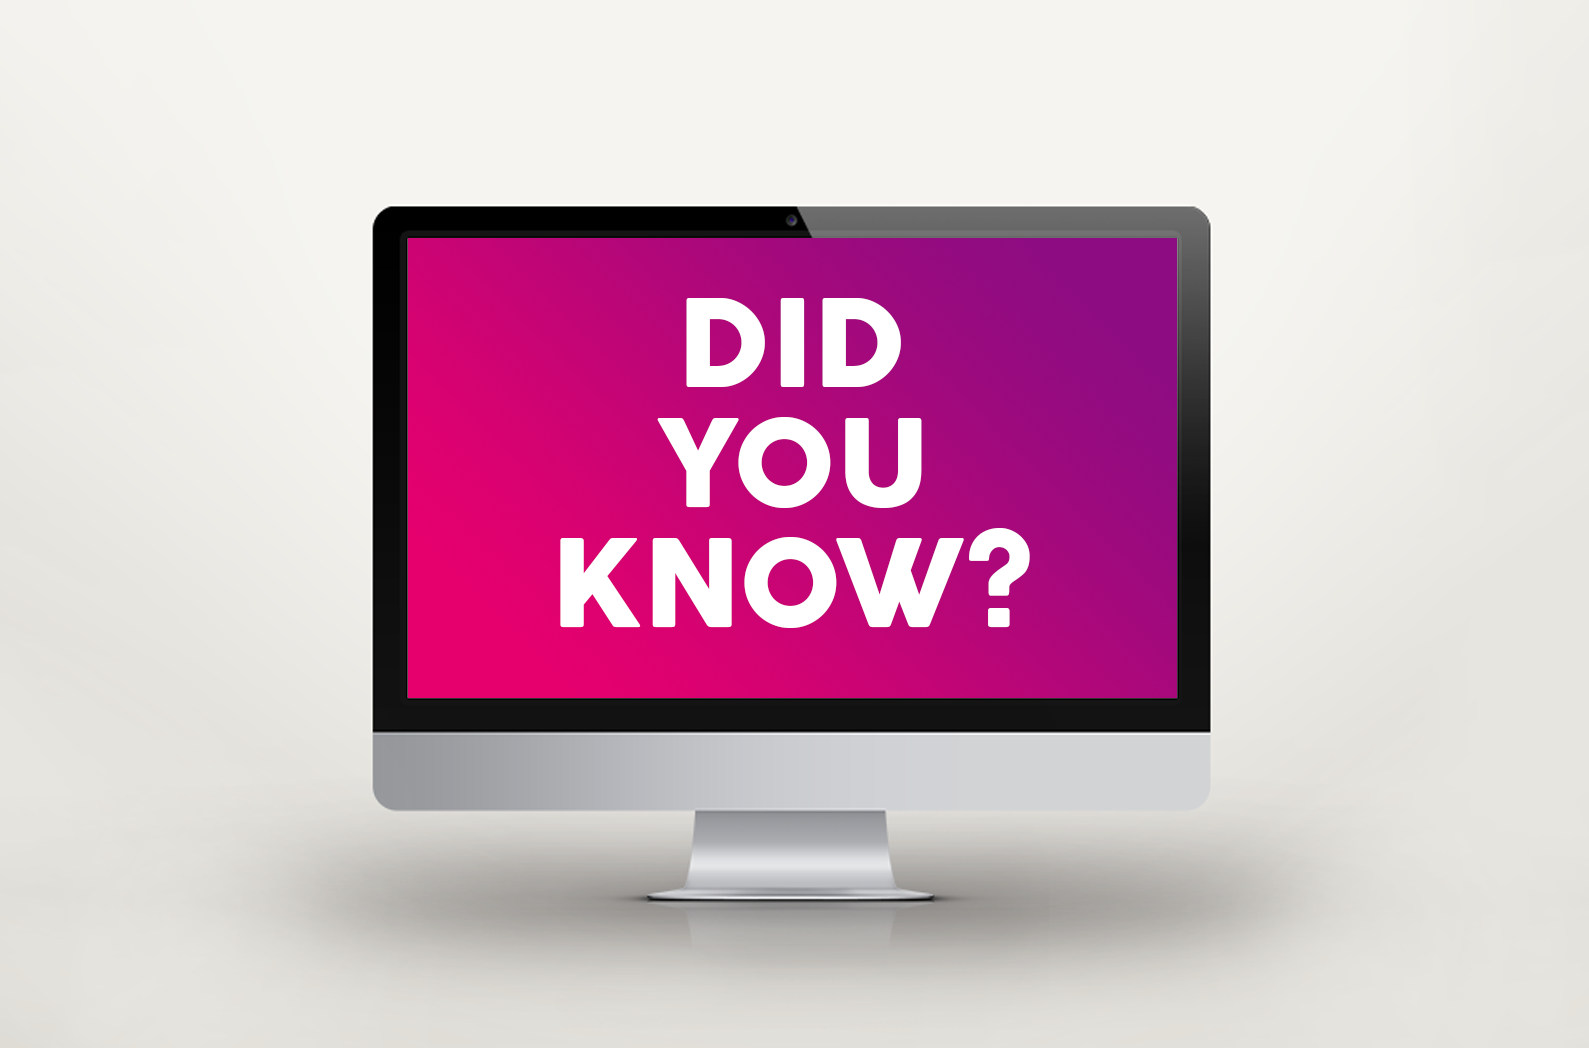 Design Services: did you know?